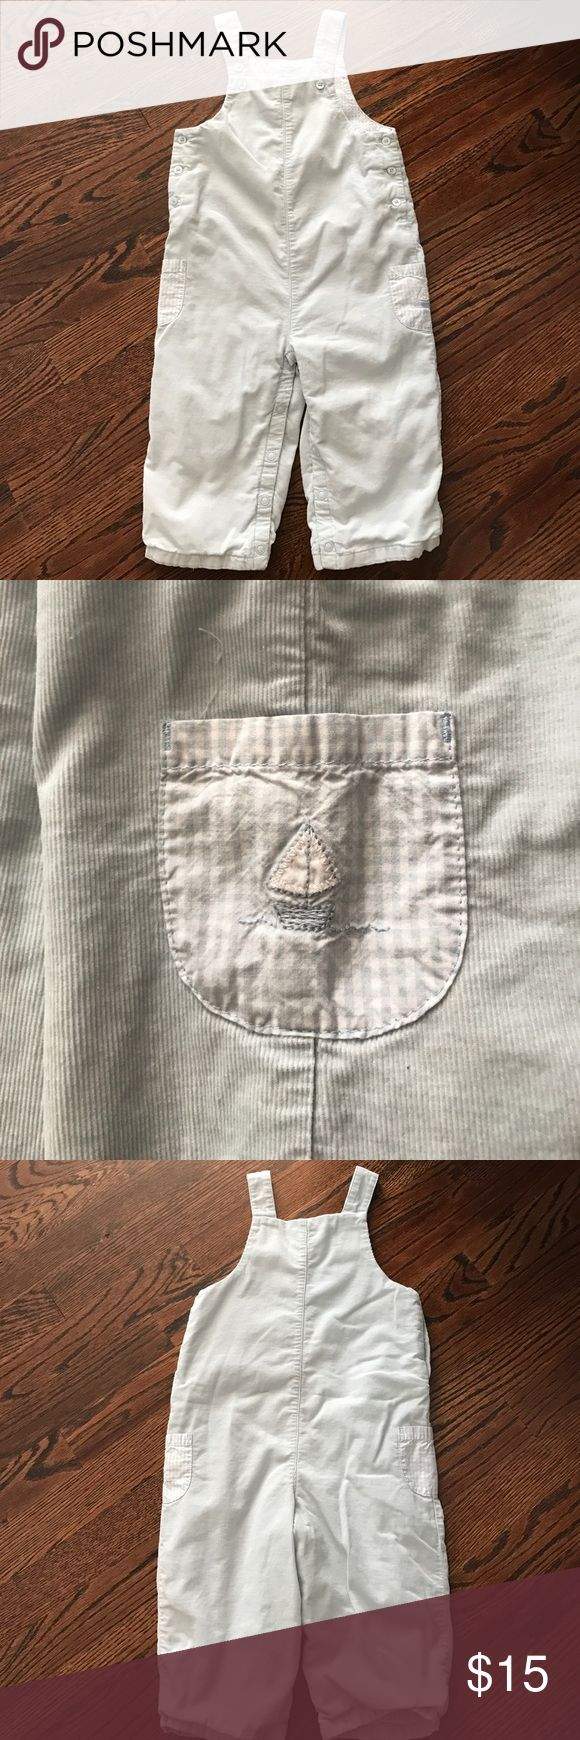 Janie and Jack Layette baby blue overalls EUC adorable light blue overalls. Sad to see them go... they have adjustable straps and cute pockets on sides. Janie and Jack One Pieces